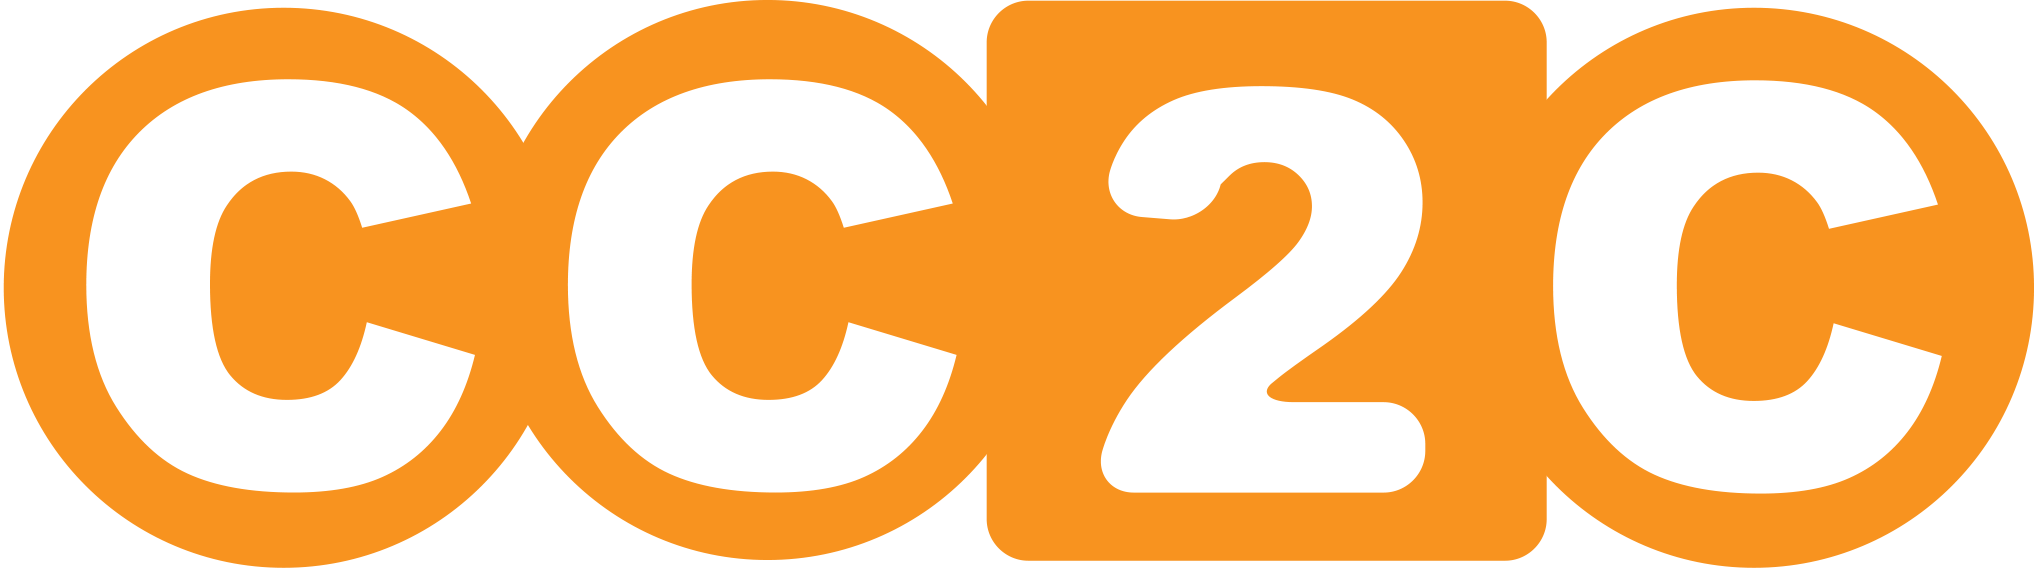 cc2c logo. orange.png